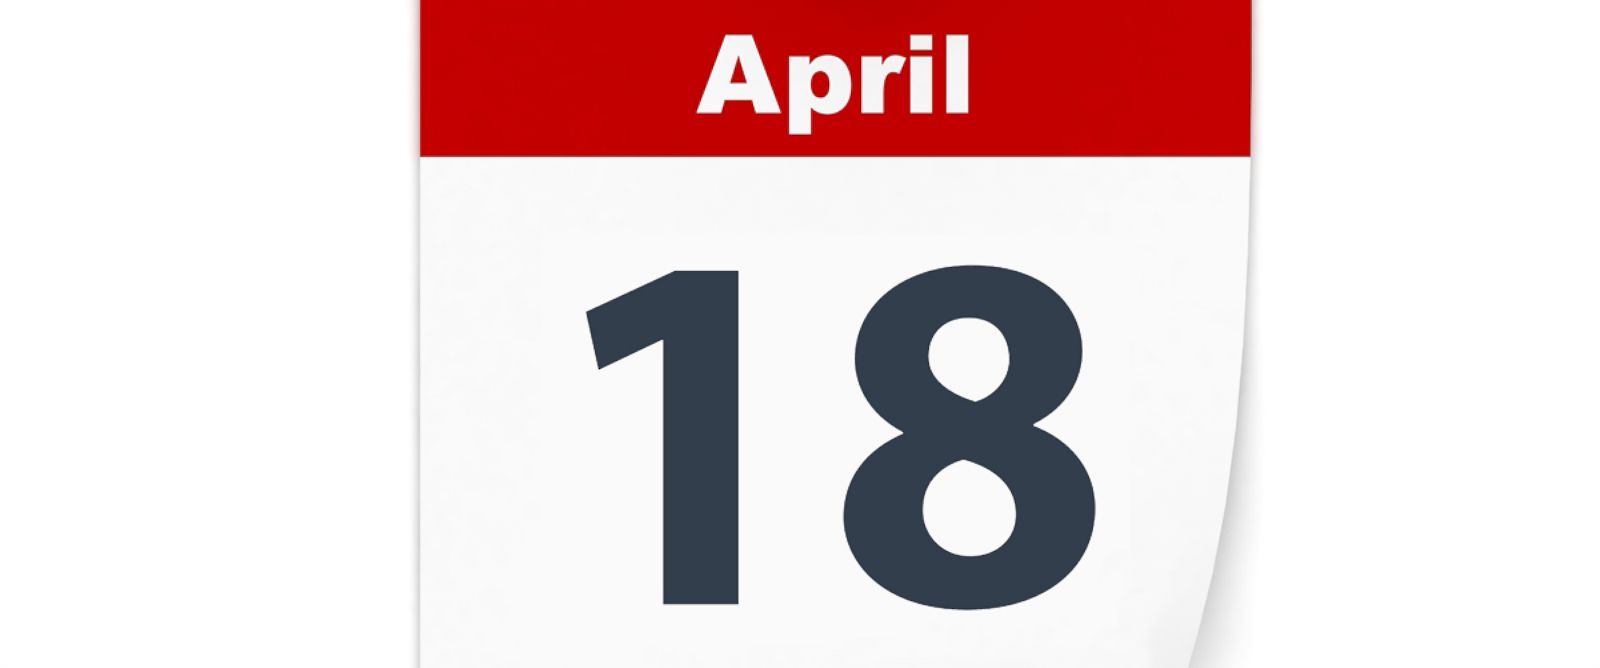 PHOTO: April 18,Tax Day, is displayed on a calendar.